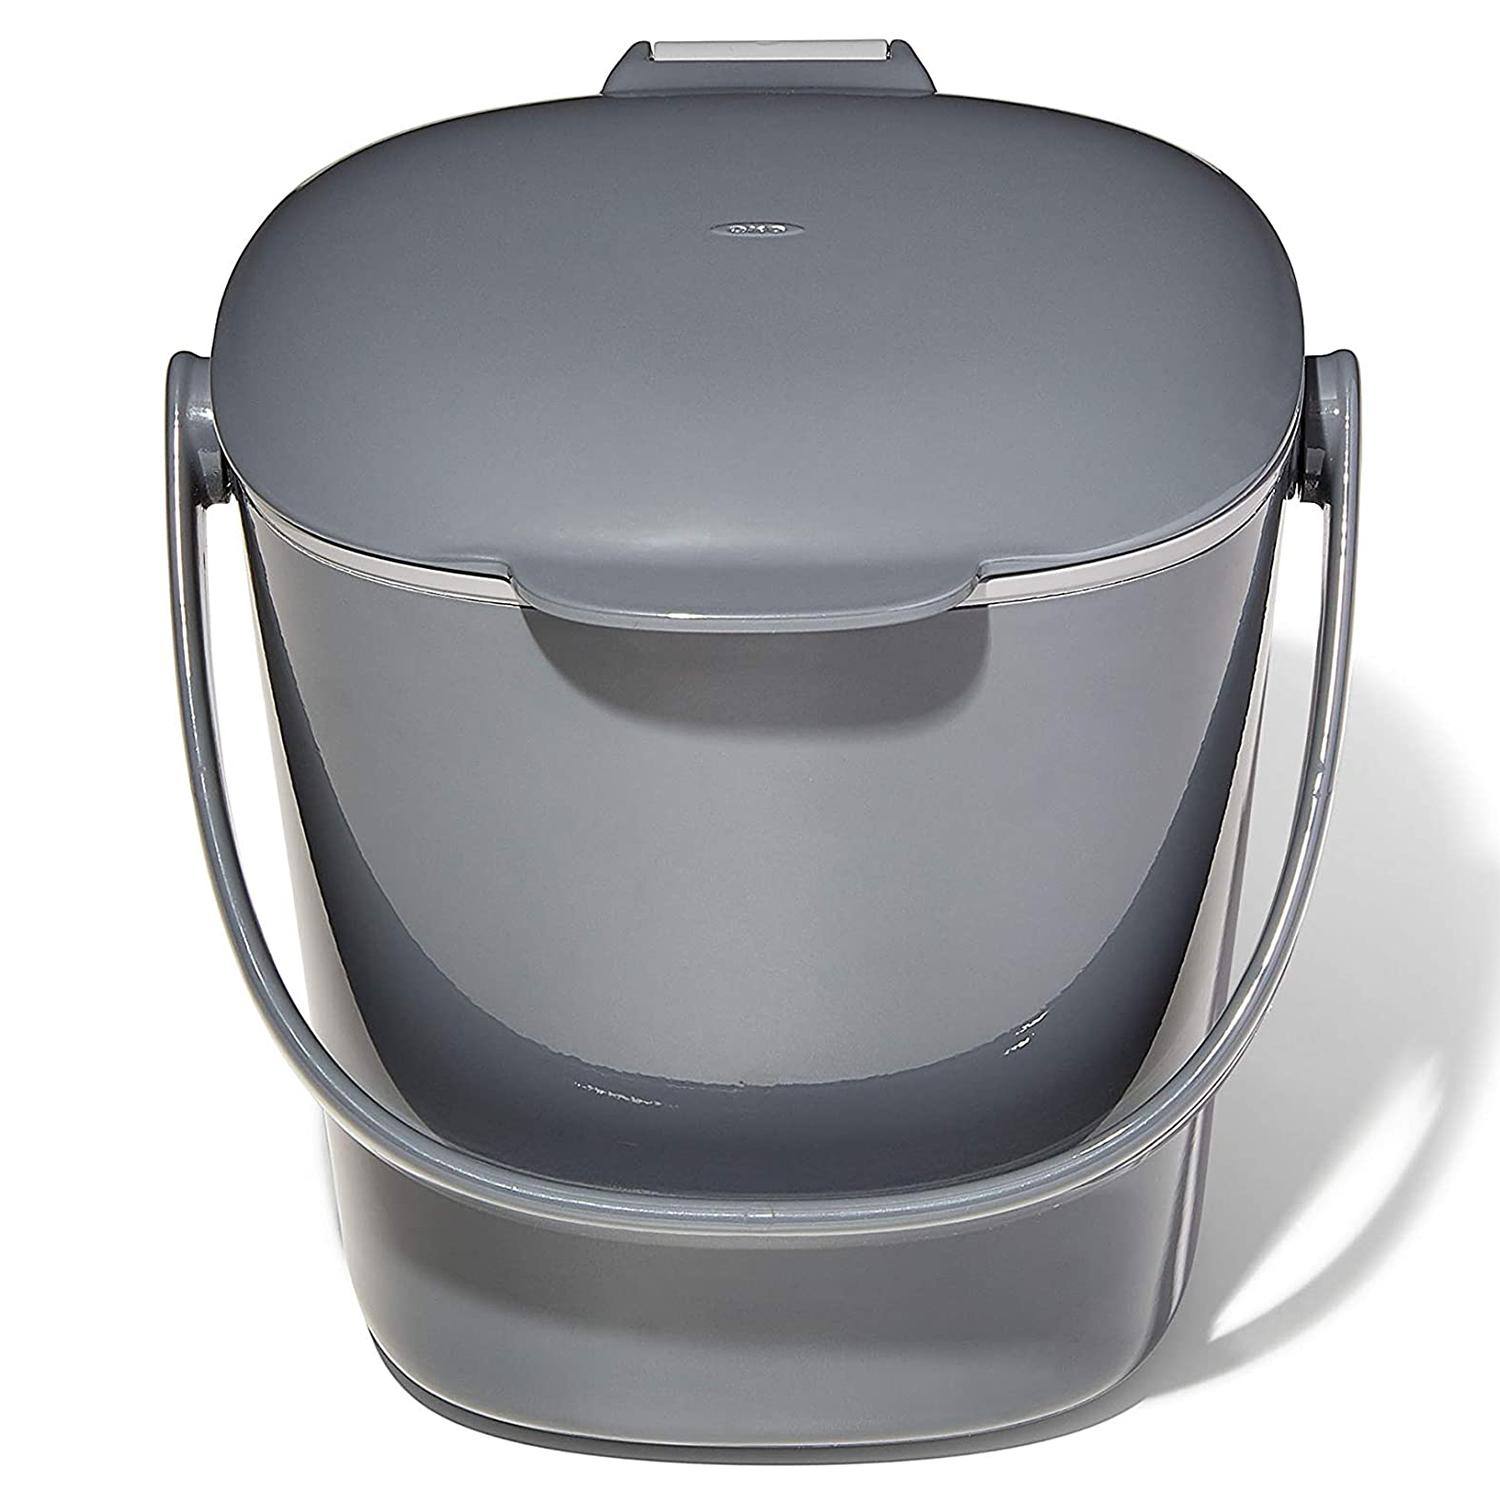 NEW OXO Good Grips Easy-Clean Compost Bin